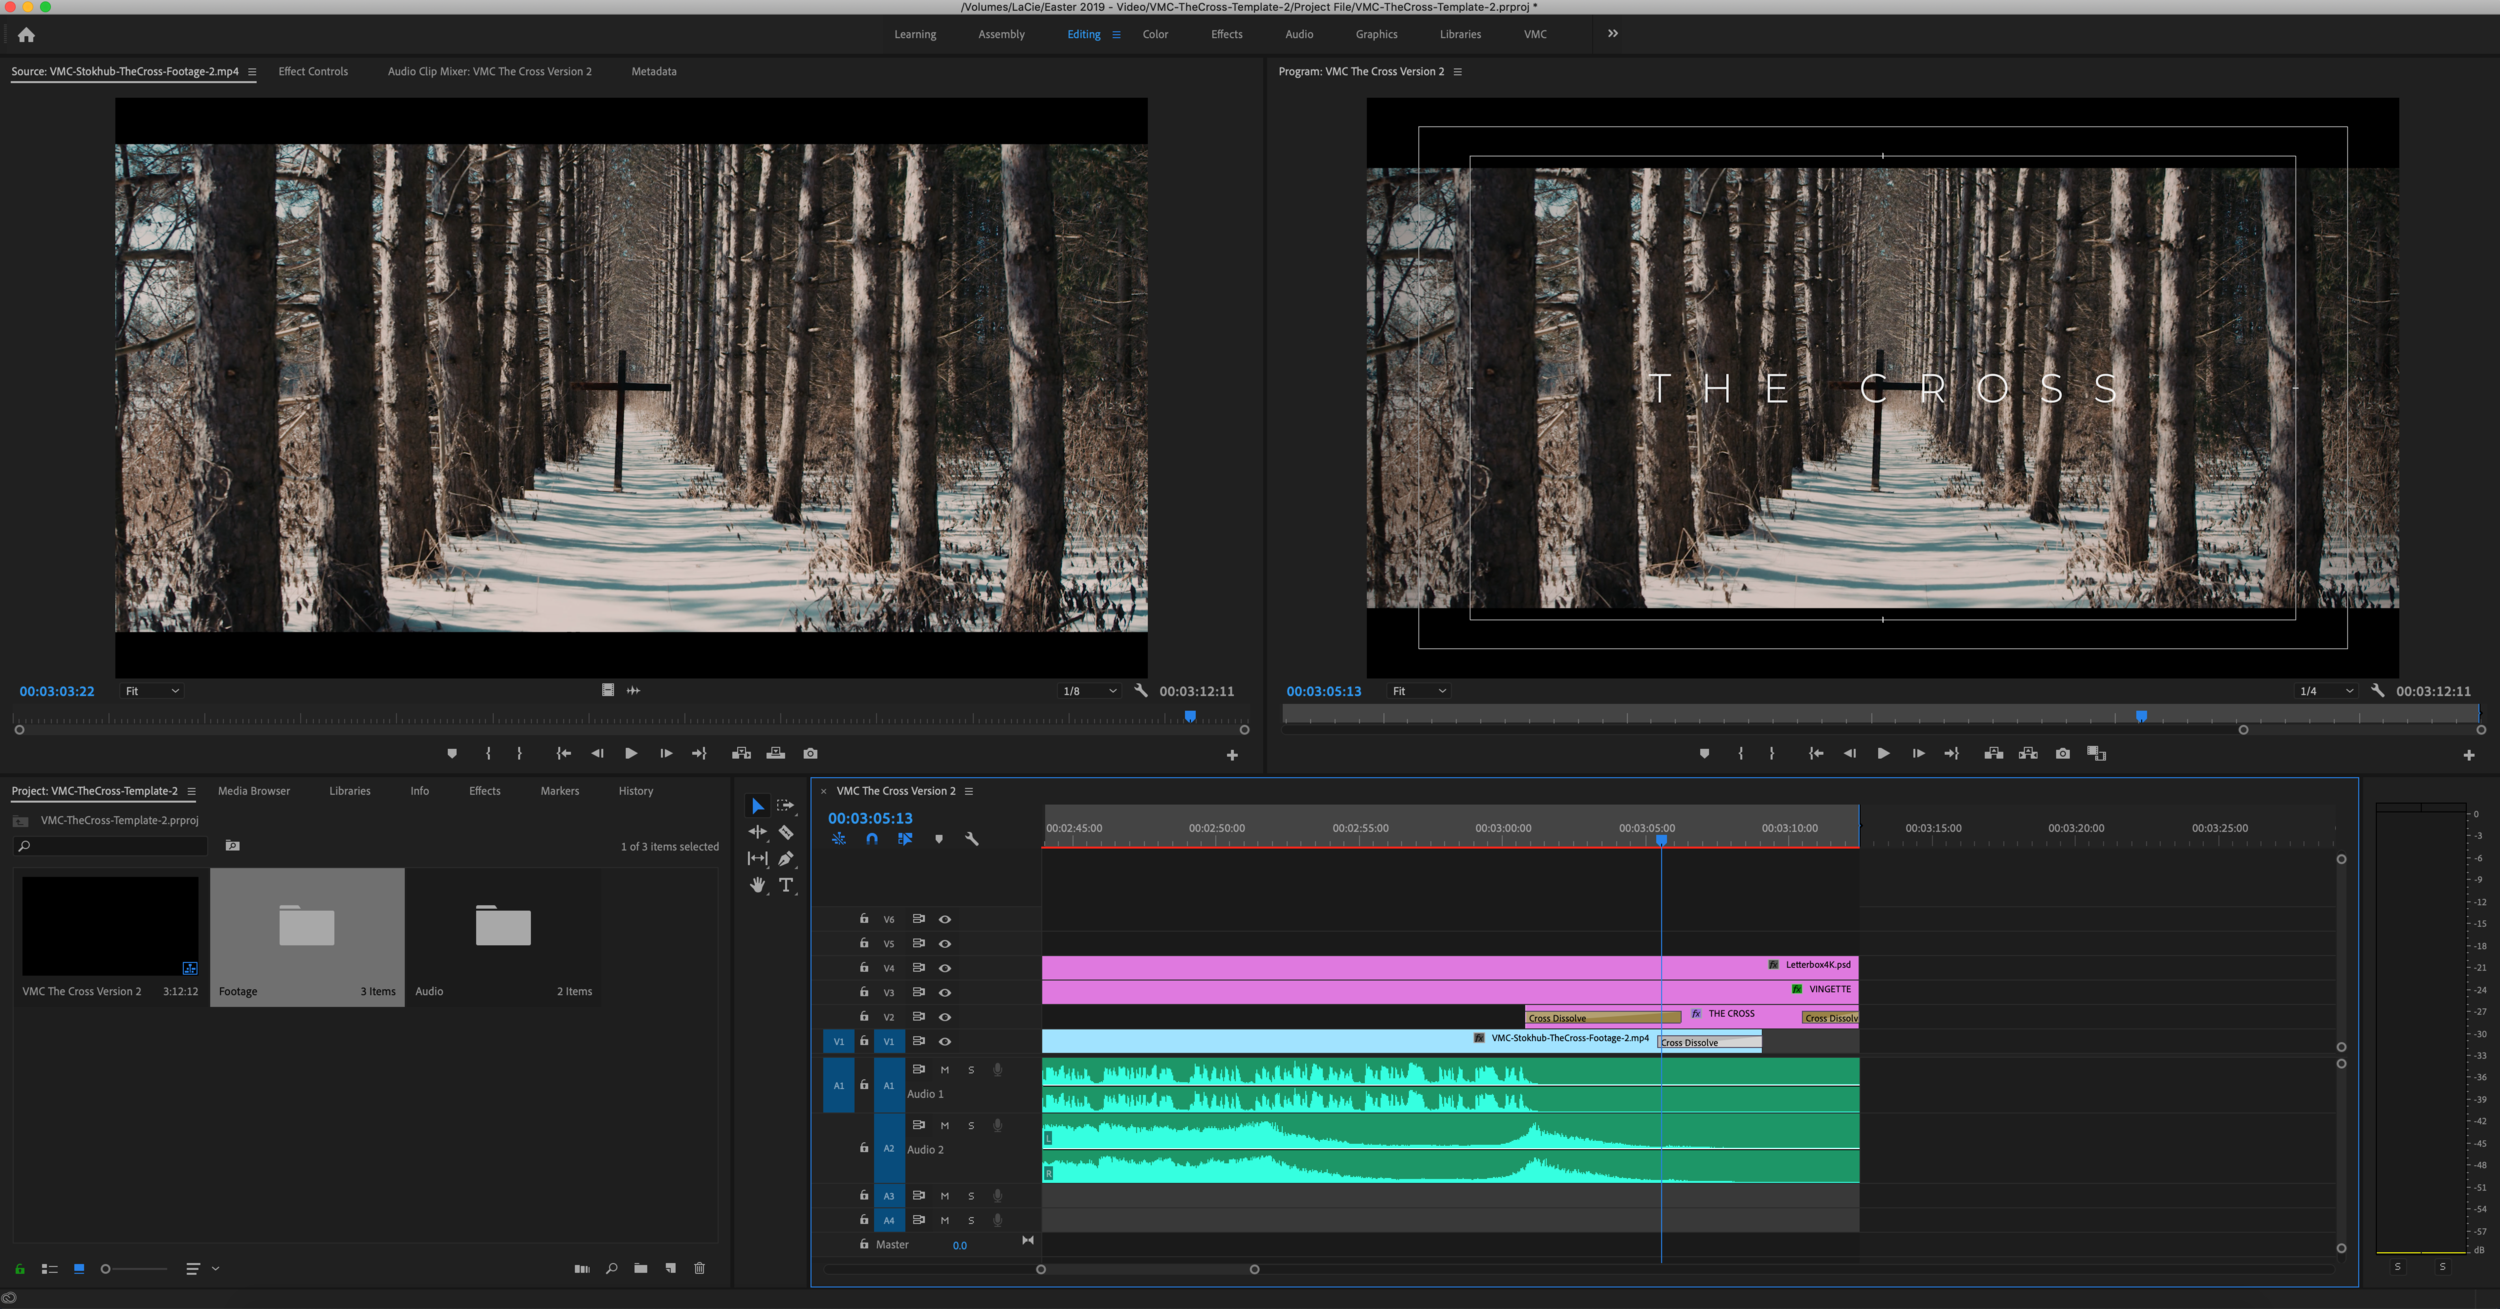 Full Premiere Template - Must be most current version of Adobe Premiere